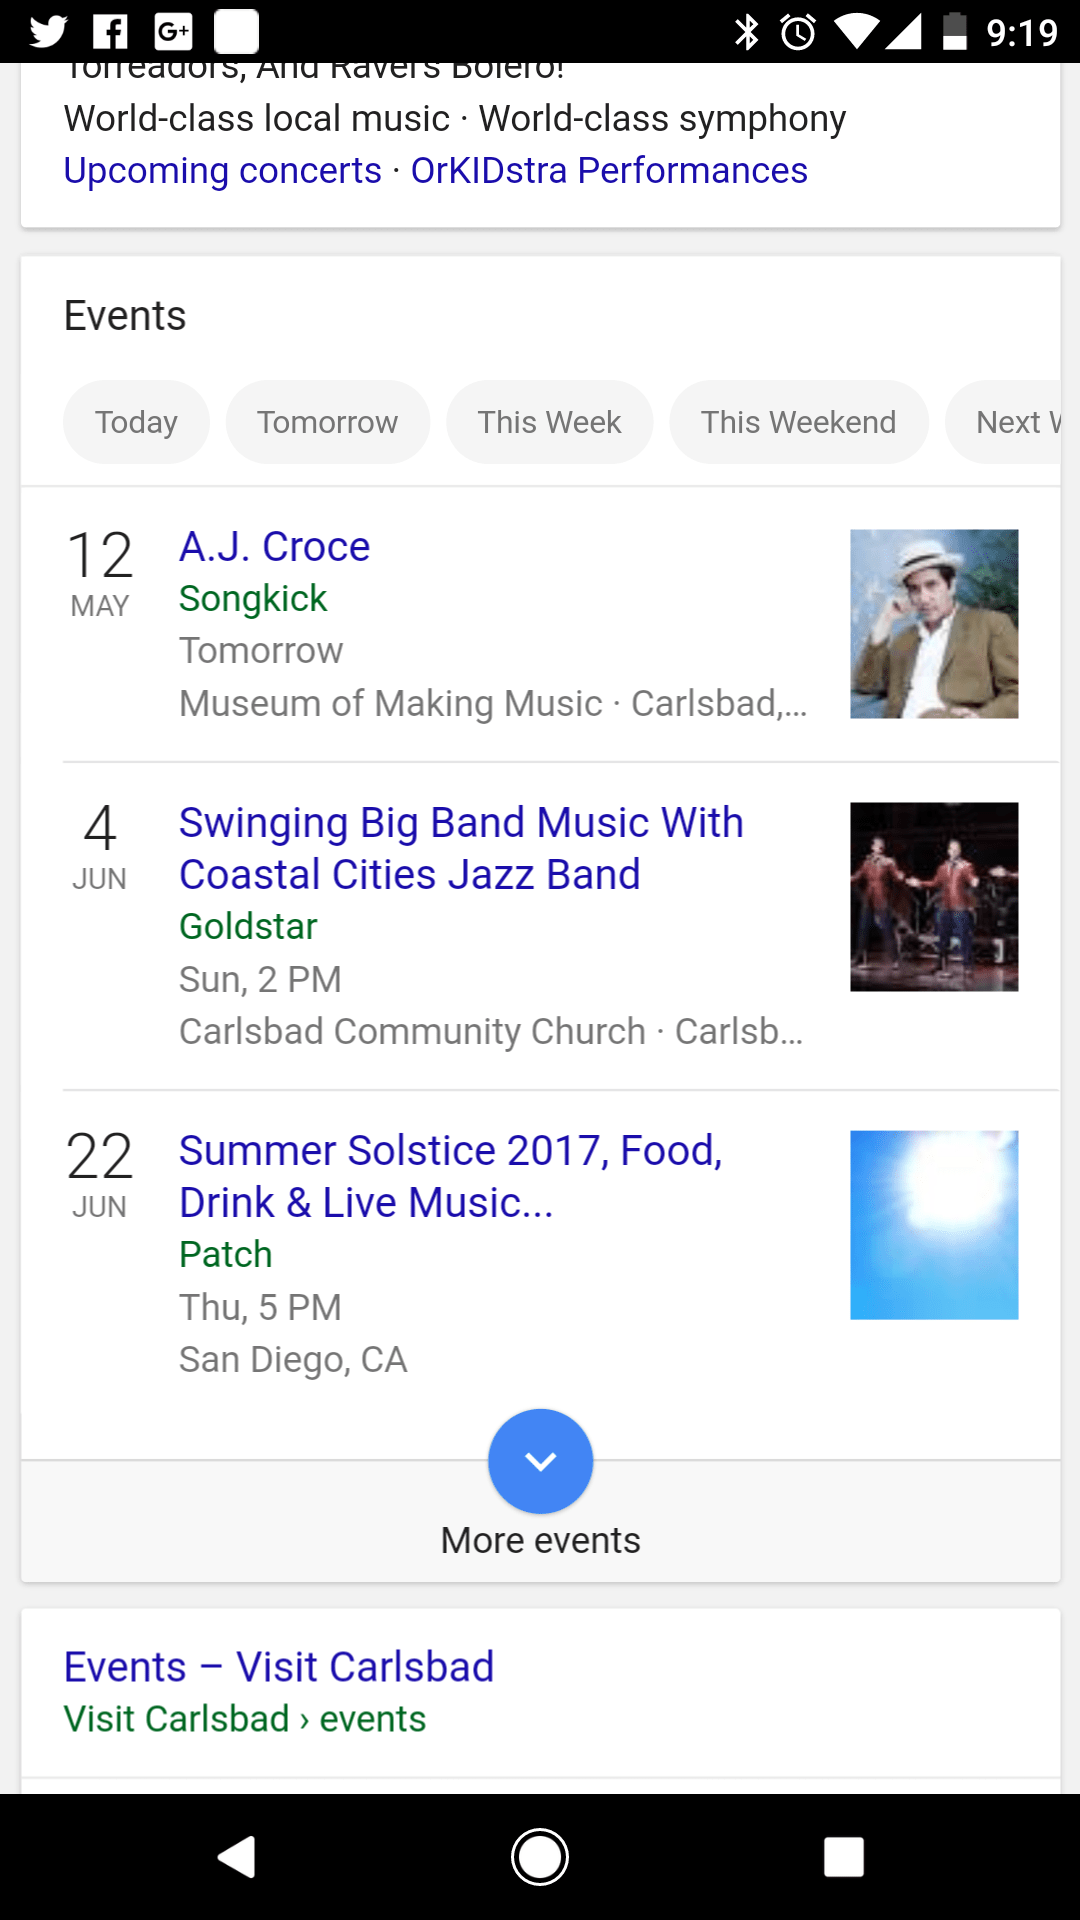 Google Music Events Near Me